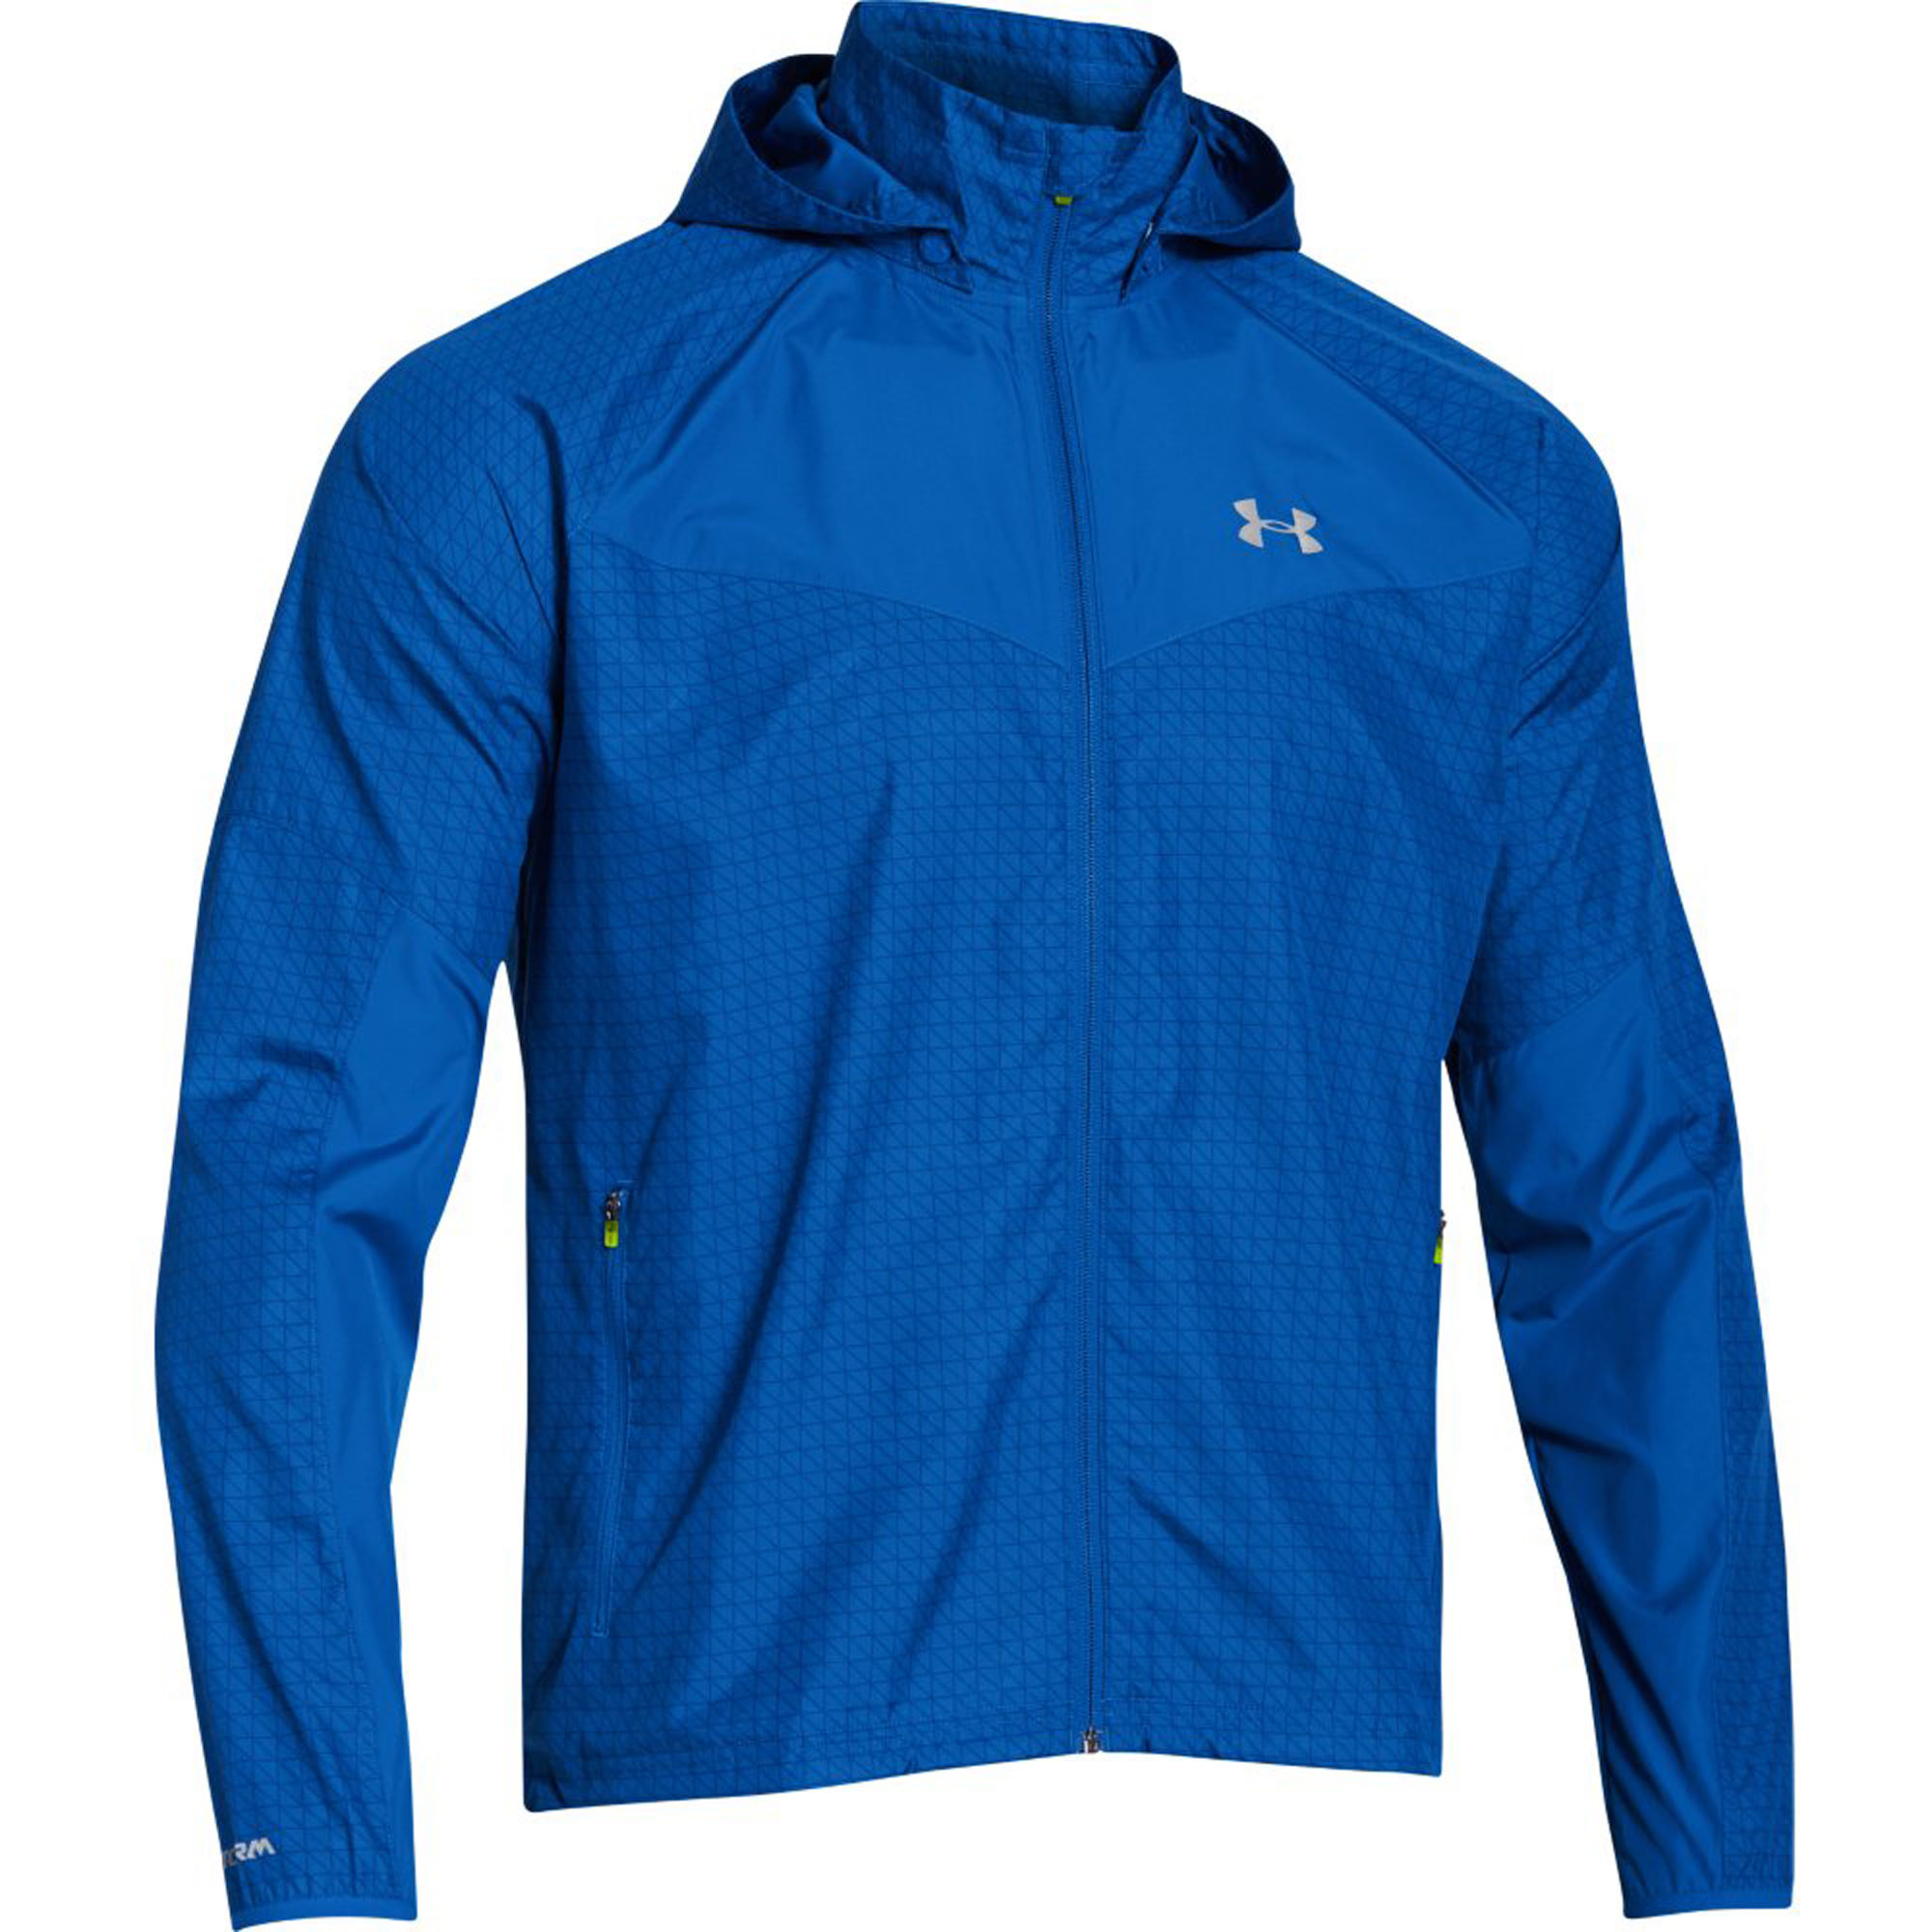 Wiggle Under Armour Storm Anchor Jacket Aw14 Running